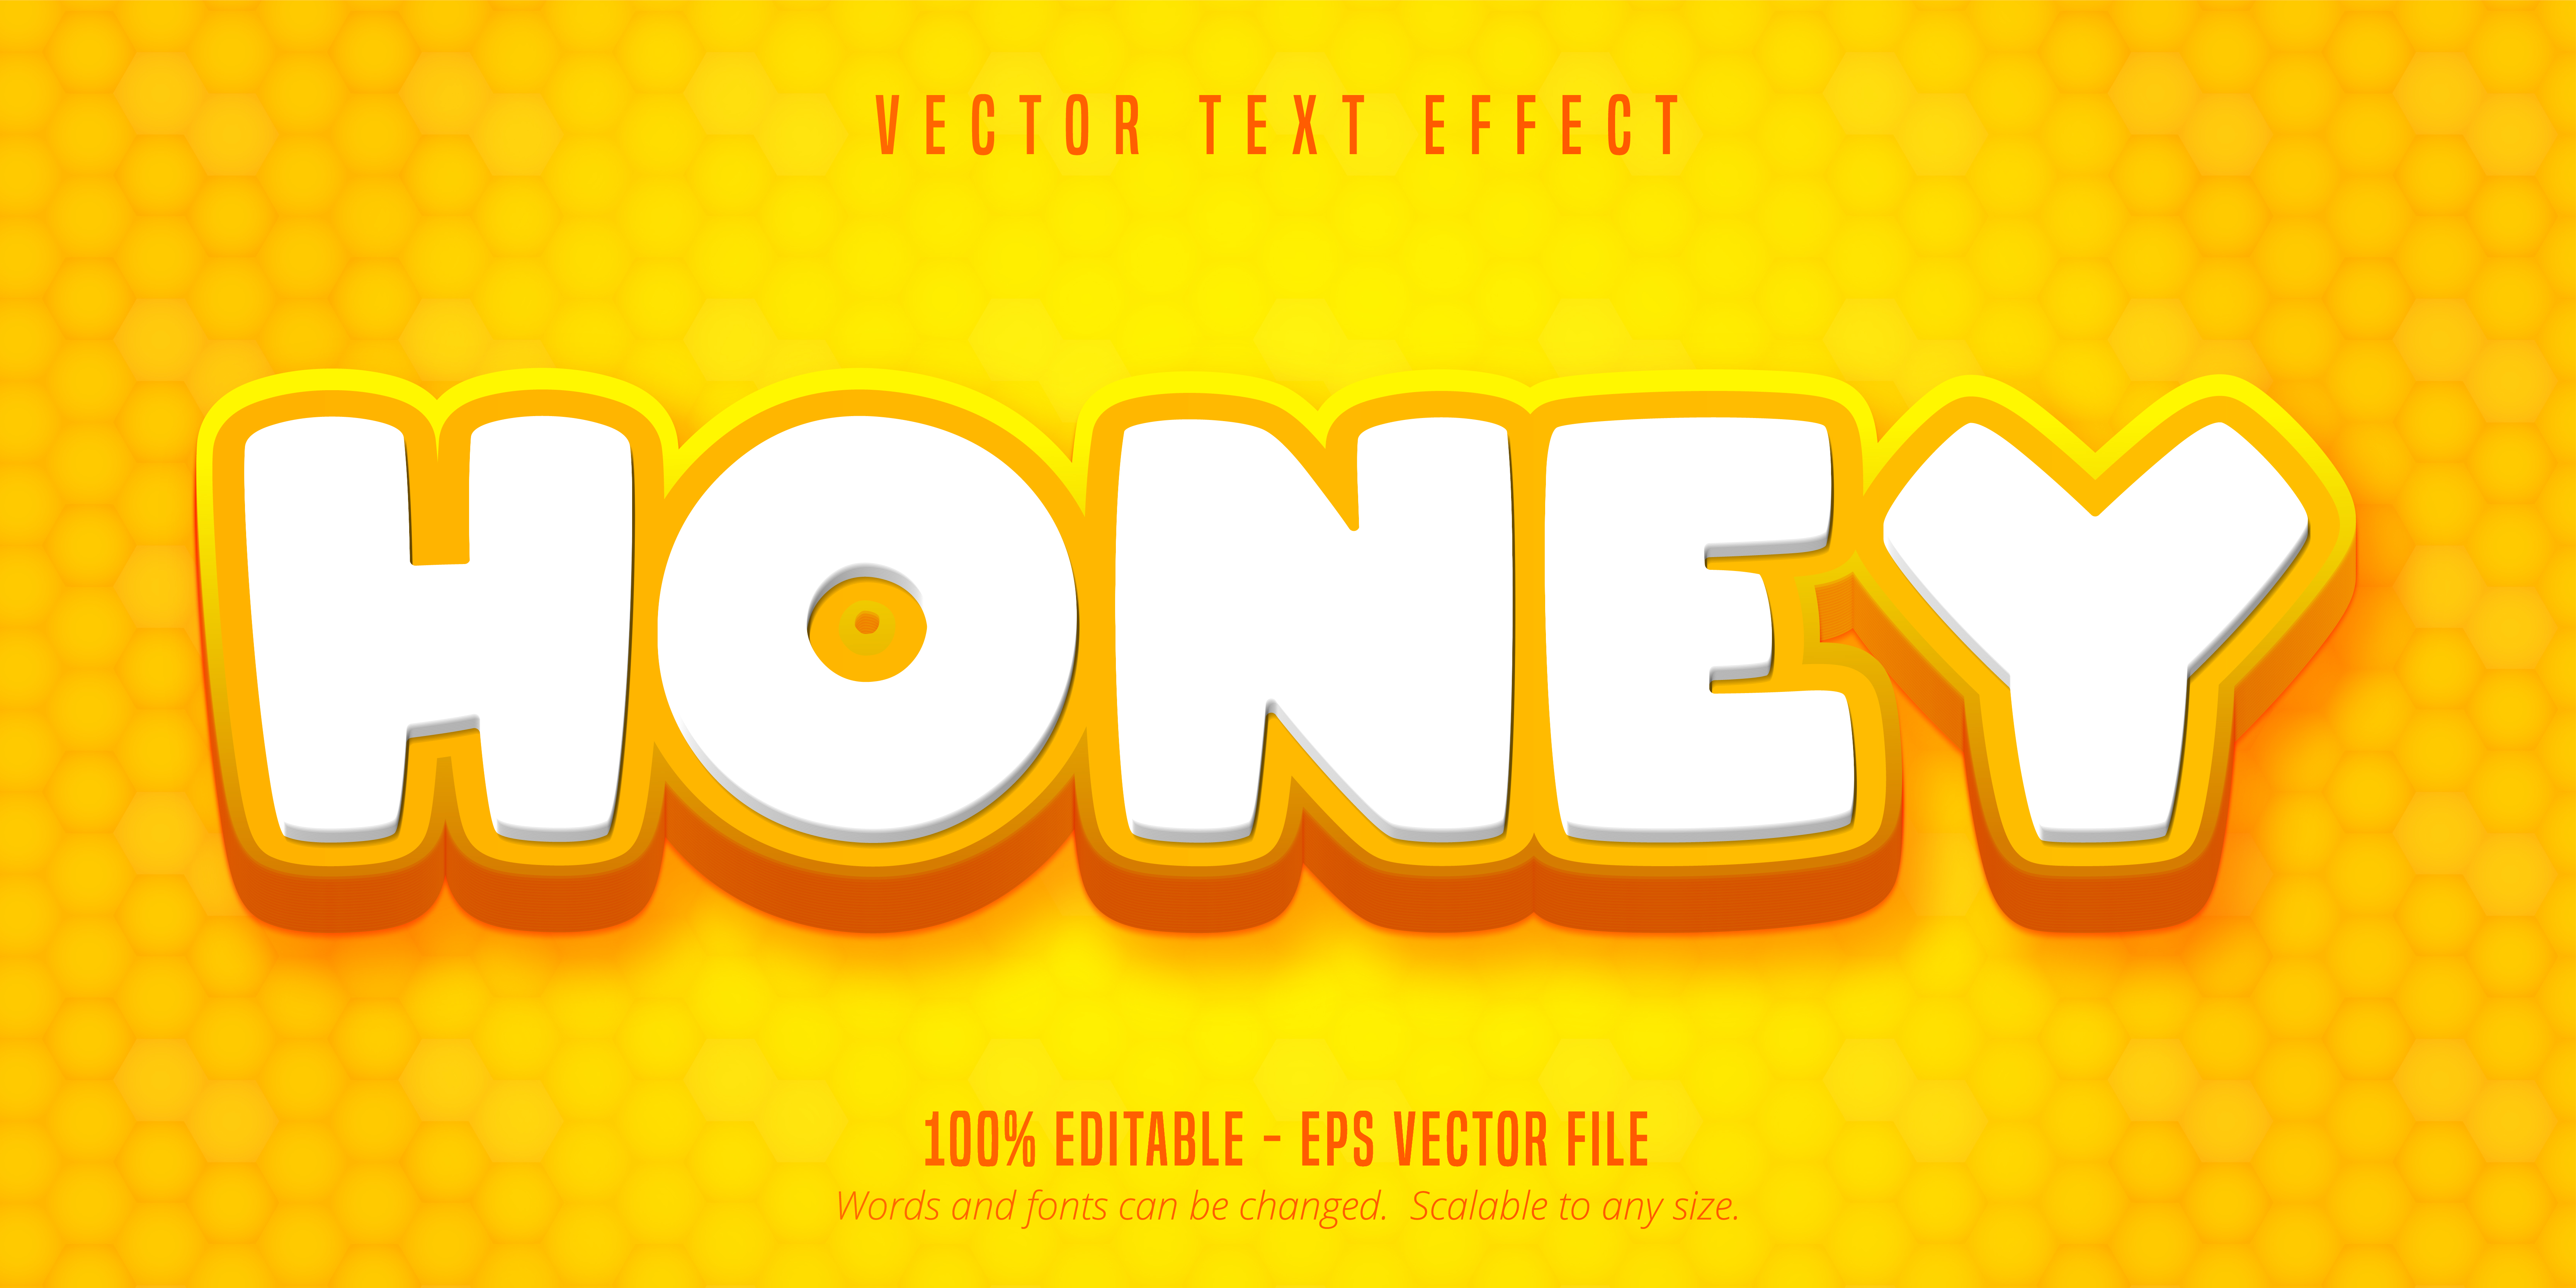 Honey Text, Cartoon Style Text Effect